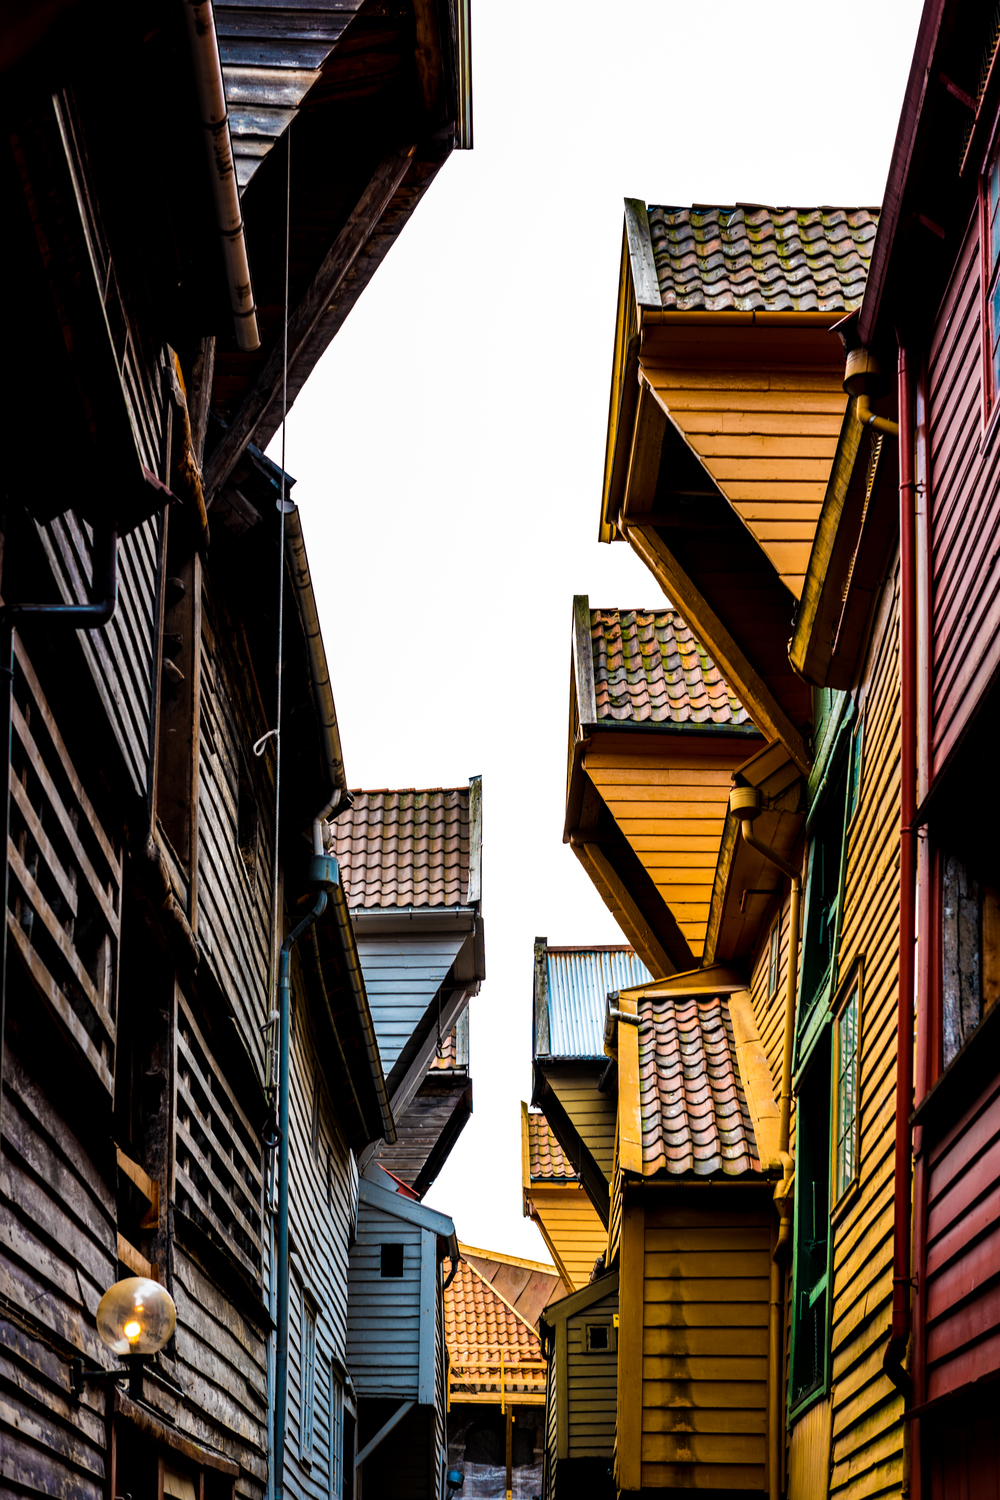 Wooden shops and homes lining the streets of Bergen, Norway